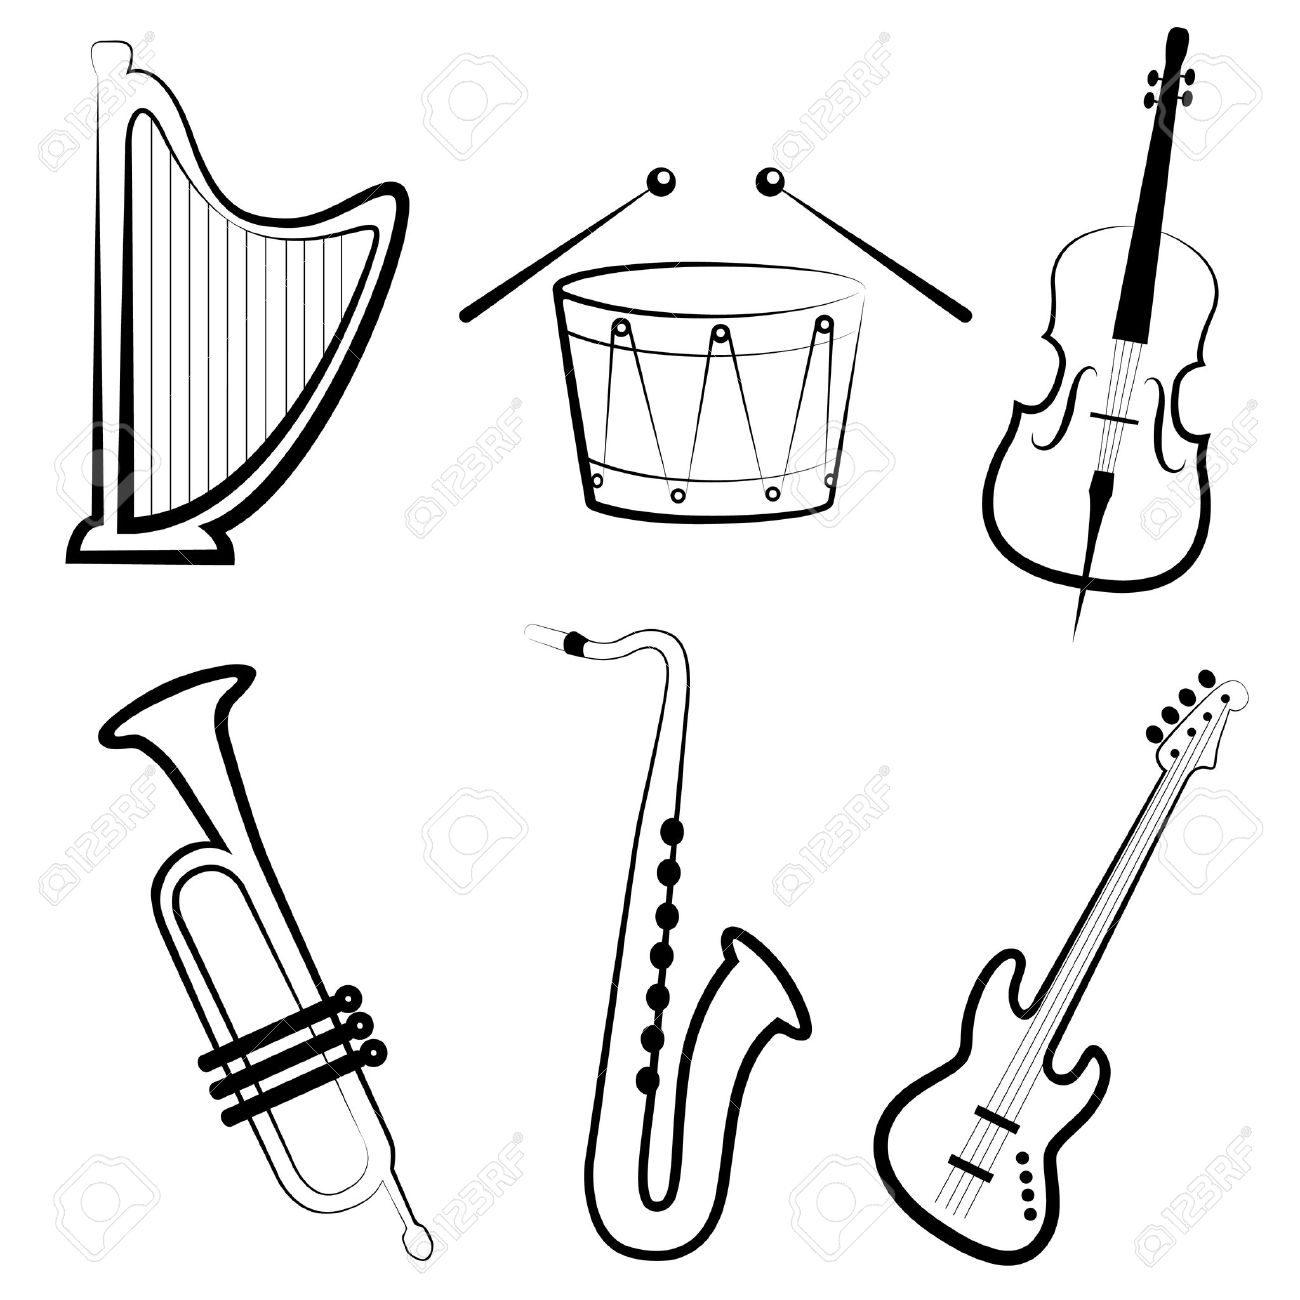 how to draw a saxophone easy how to draw a saxophone easy a saxophone draw easy how to